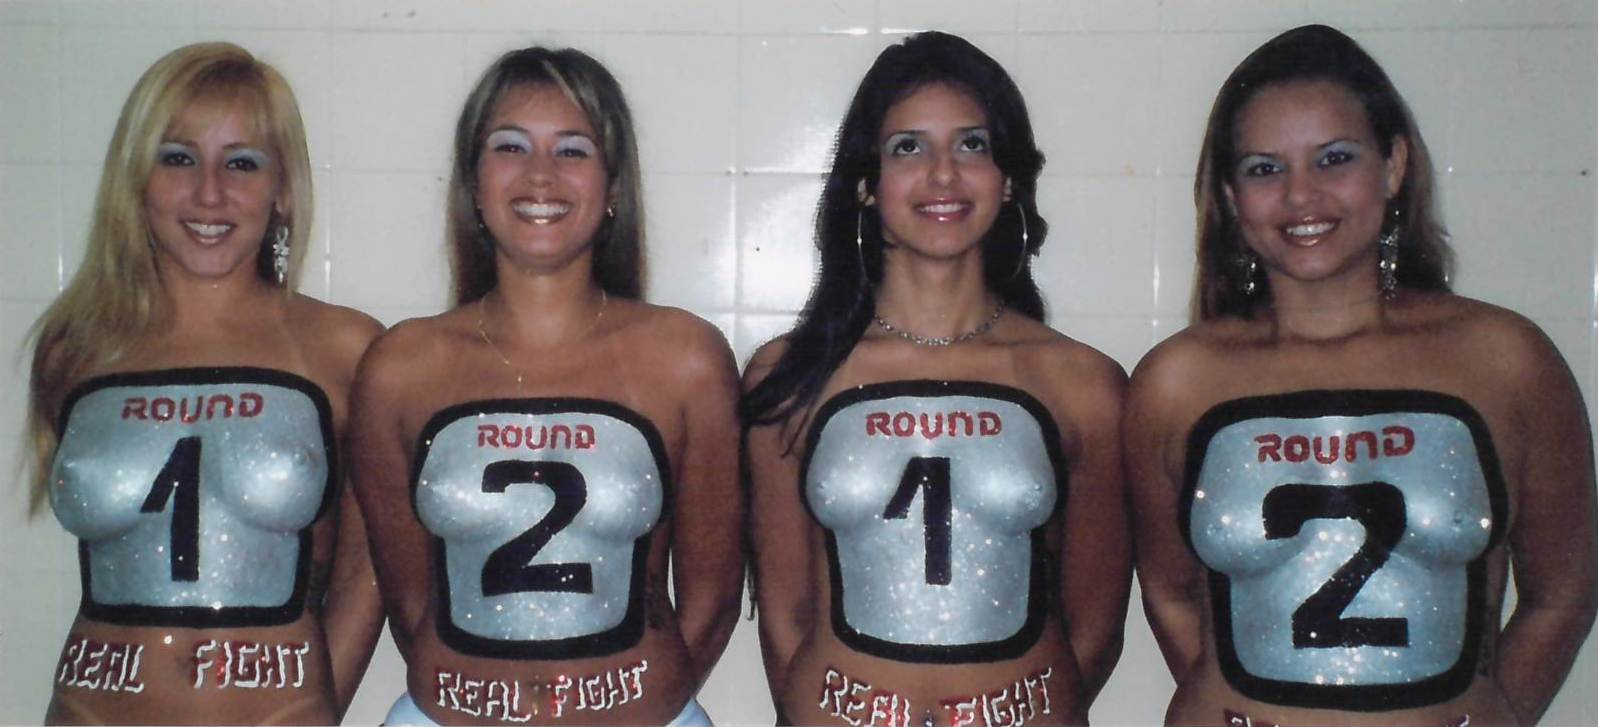 28 - Ring Girls